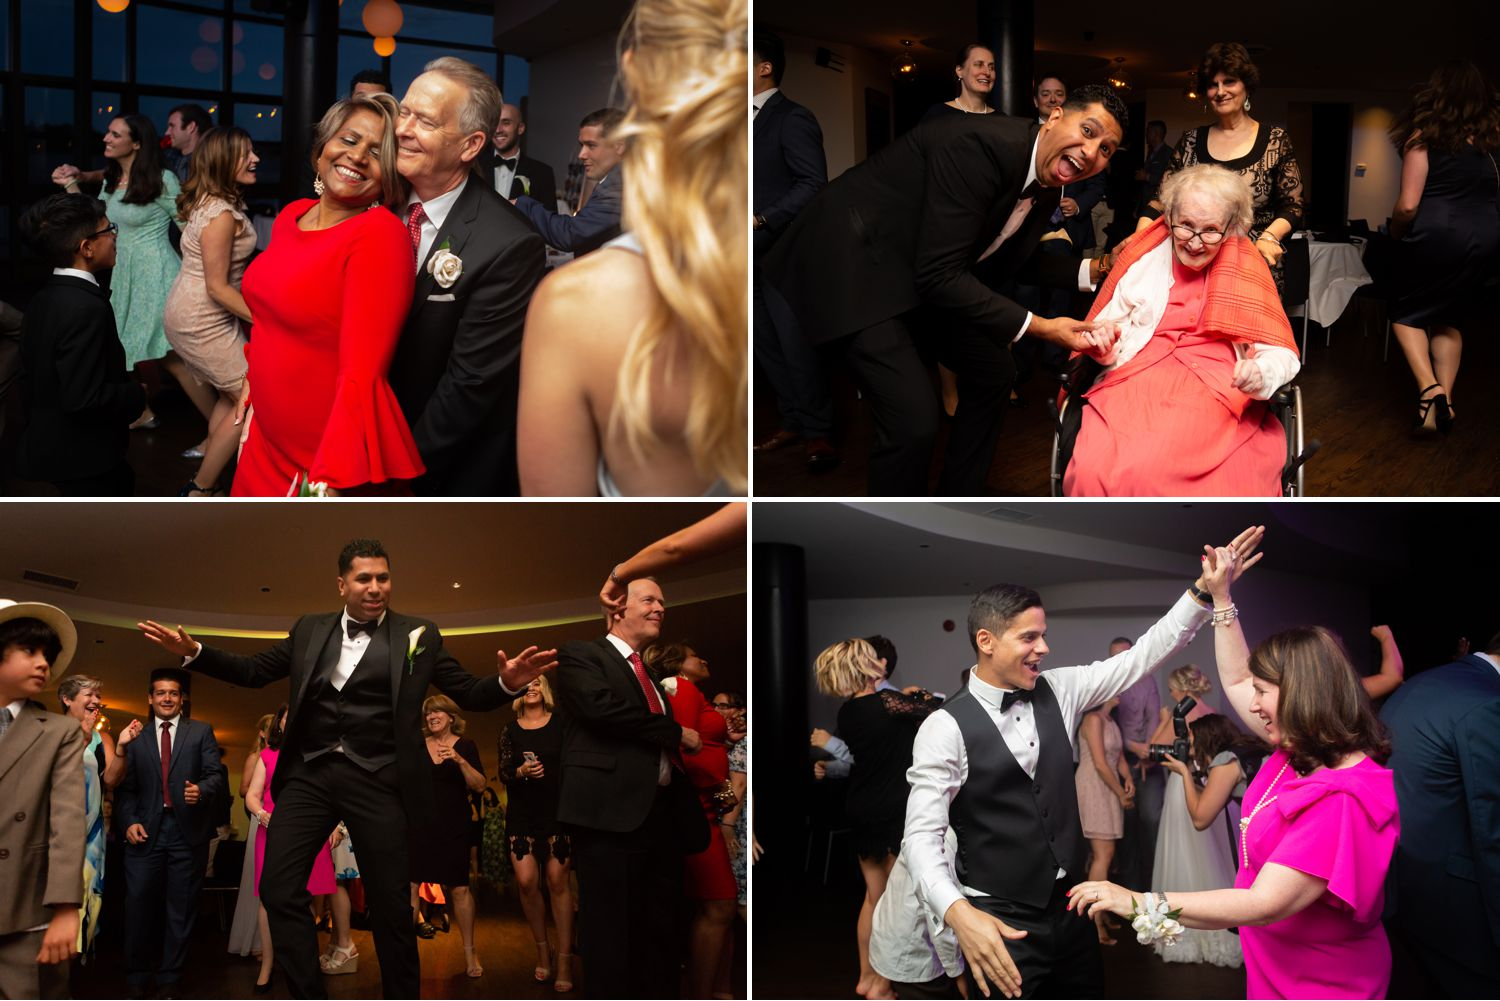 Guests dancing at a wedding reception taking place at Lago Bar & Grill in Ottawa